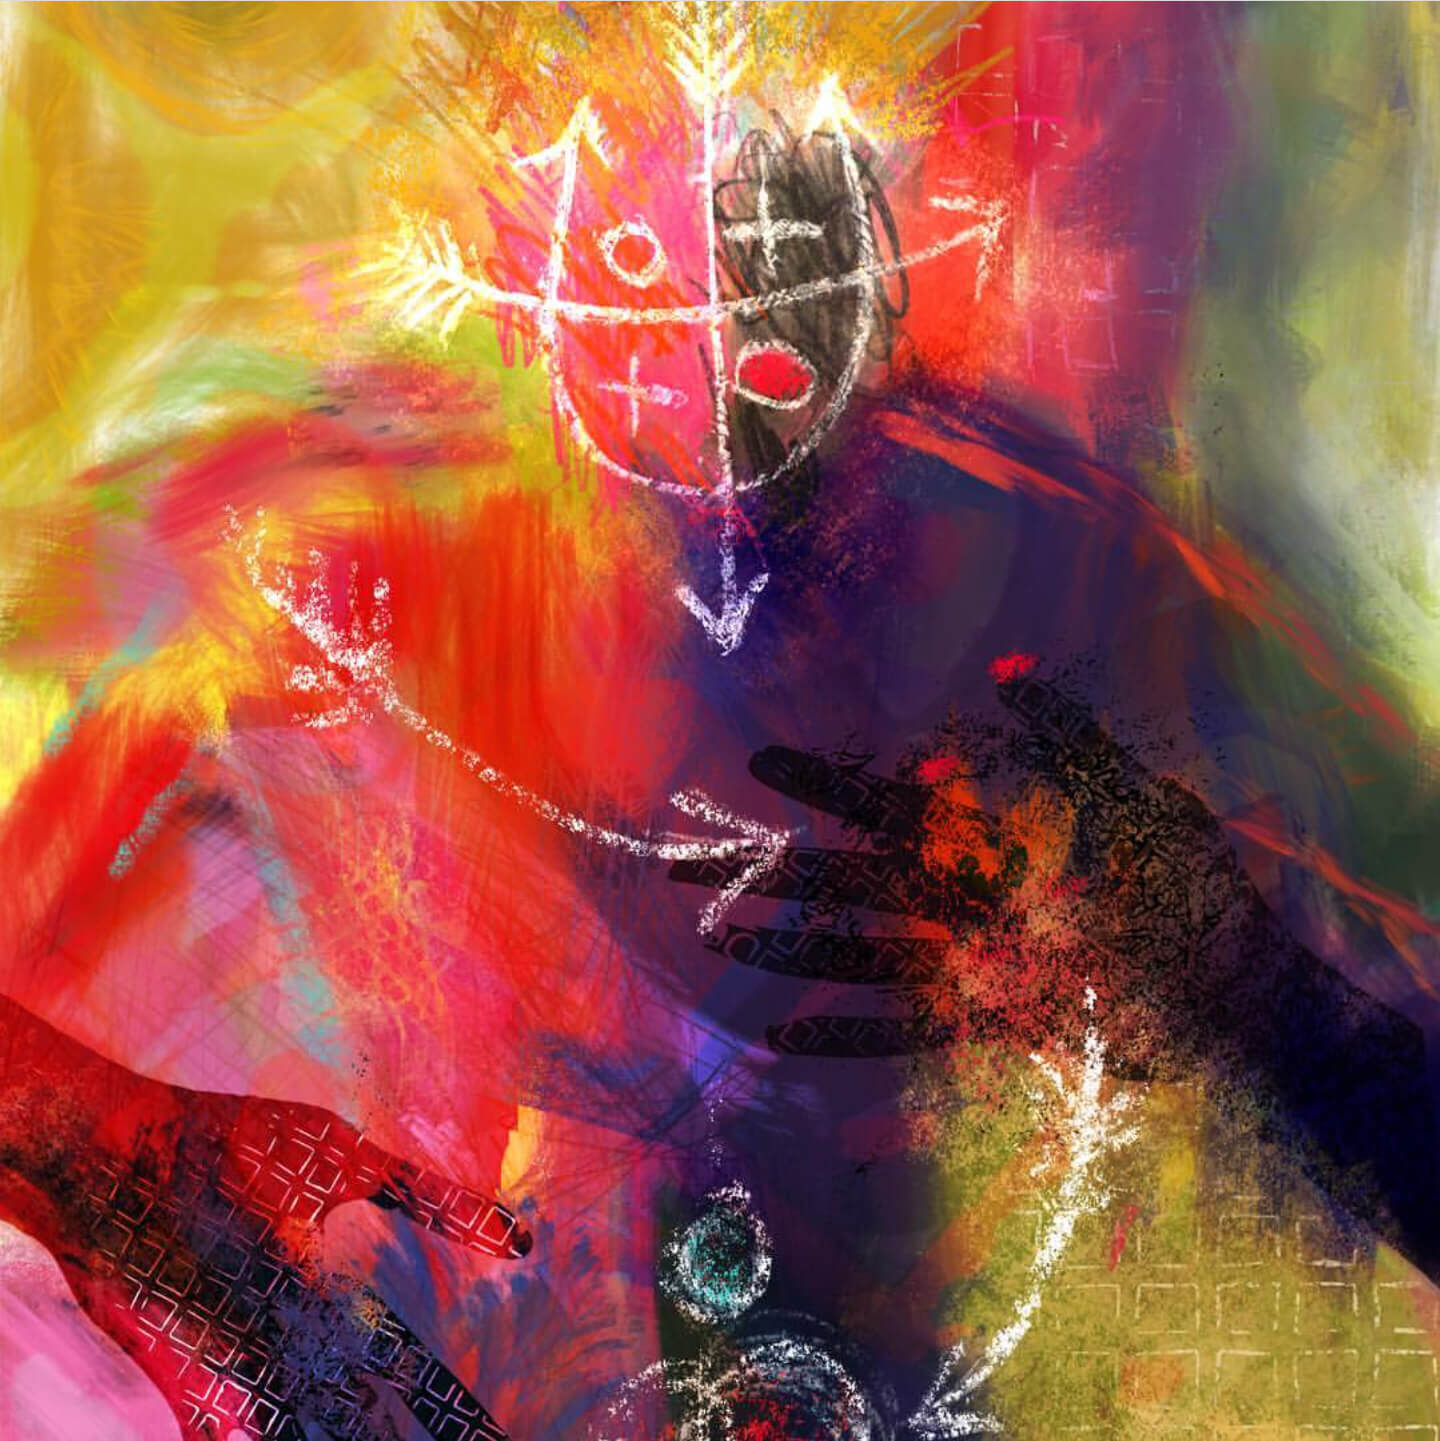 A painterly, expressionistic image by featured artist, Barbara Braman